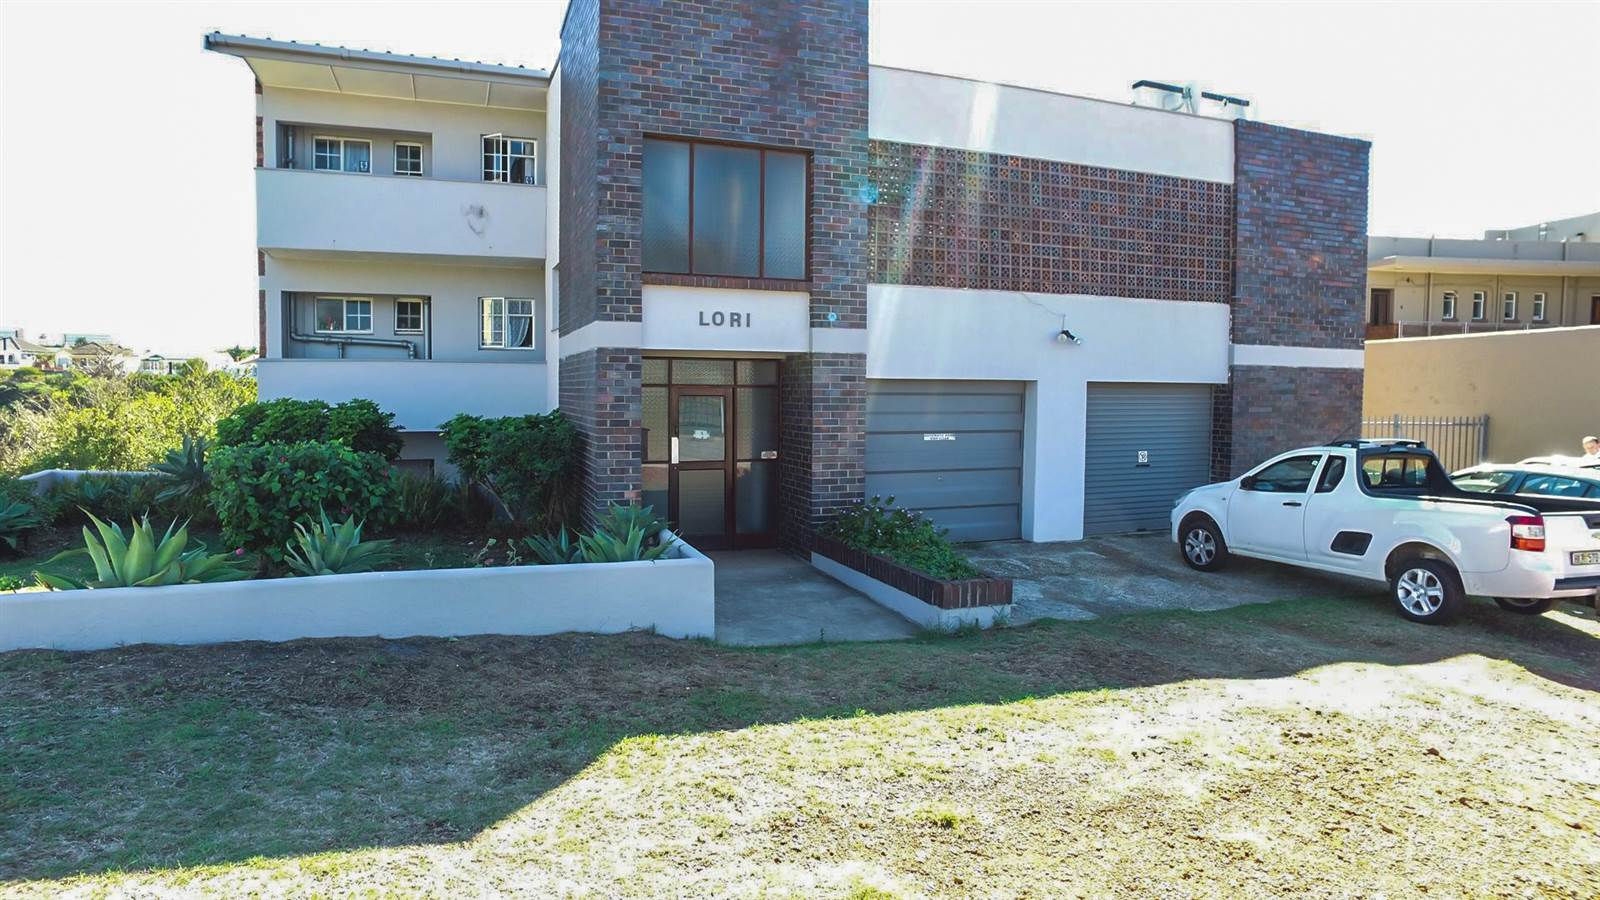 2 Bedroom Apartment for sale in Richmond Hill T